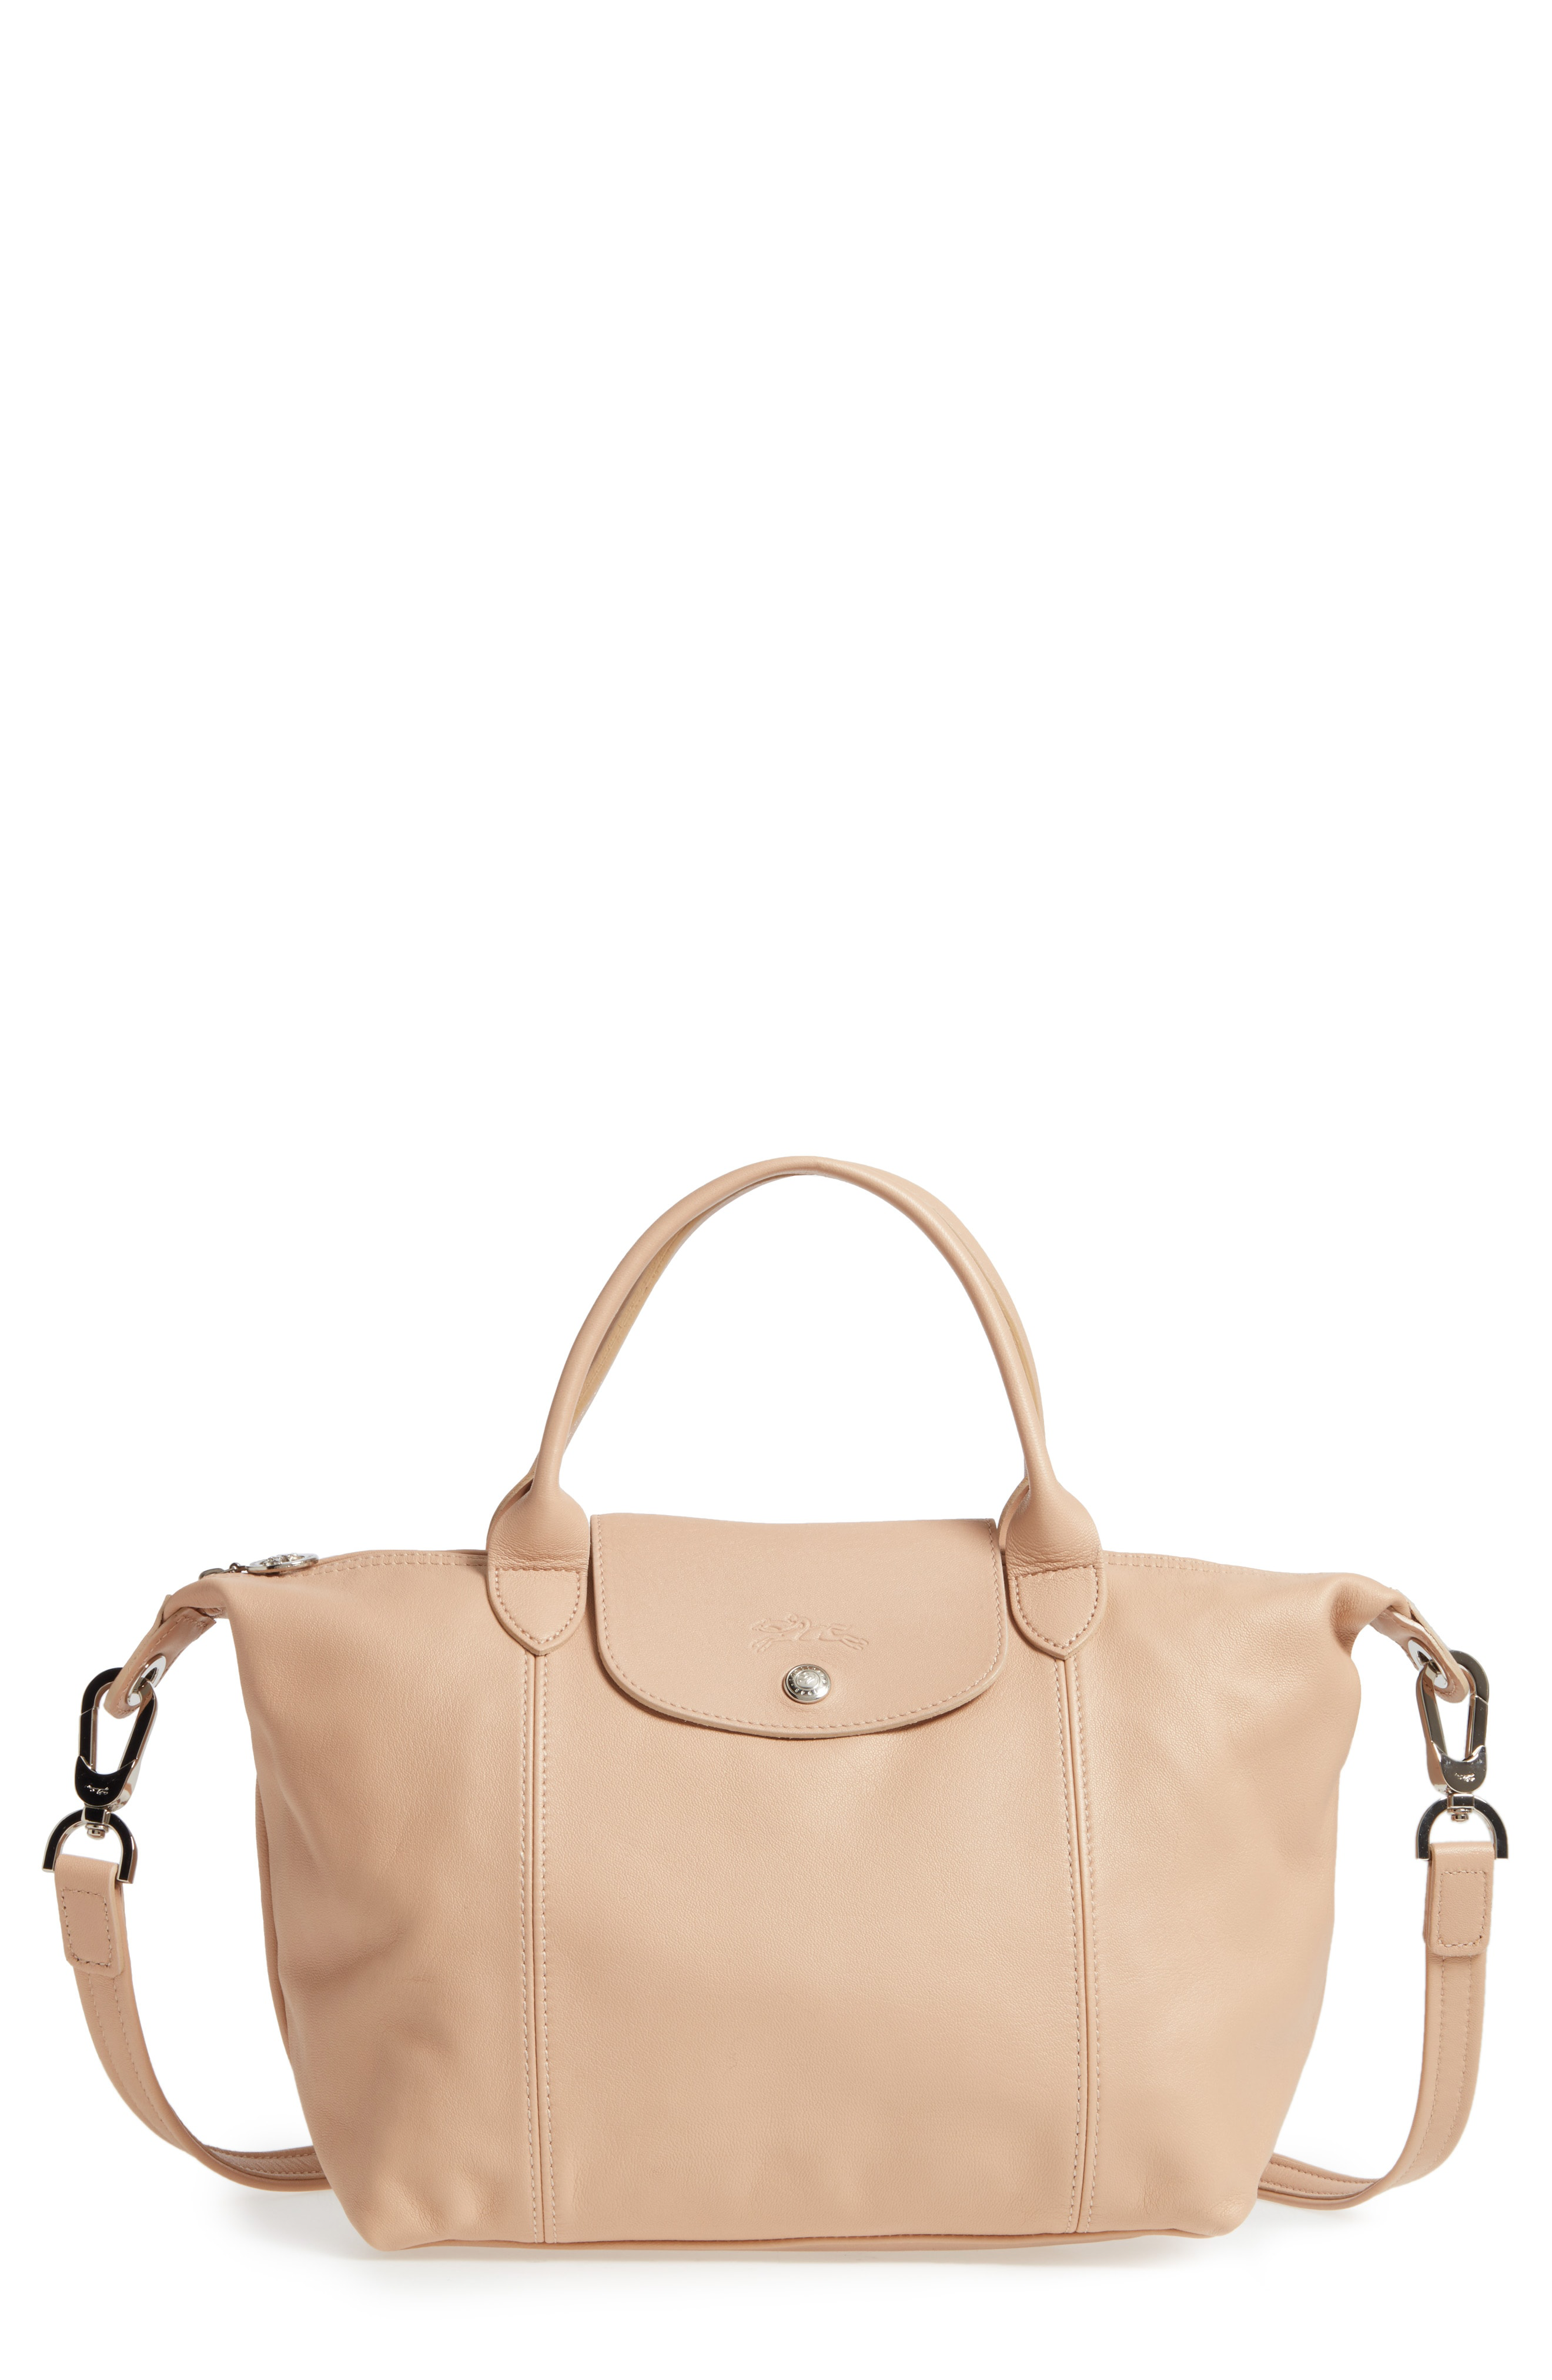 Small 'le Pliage Cuir' Leather Top Handle Tote In Gold Beige